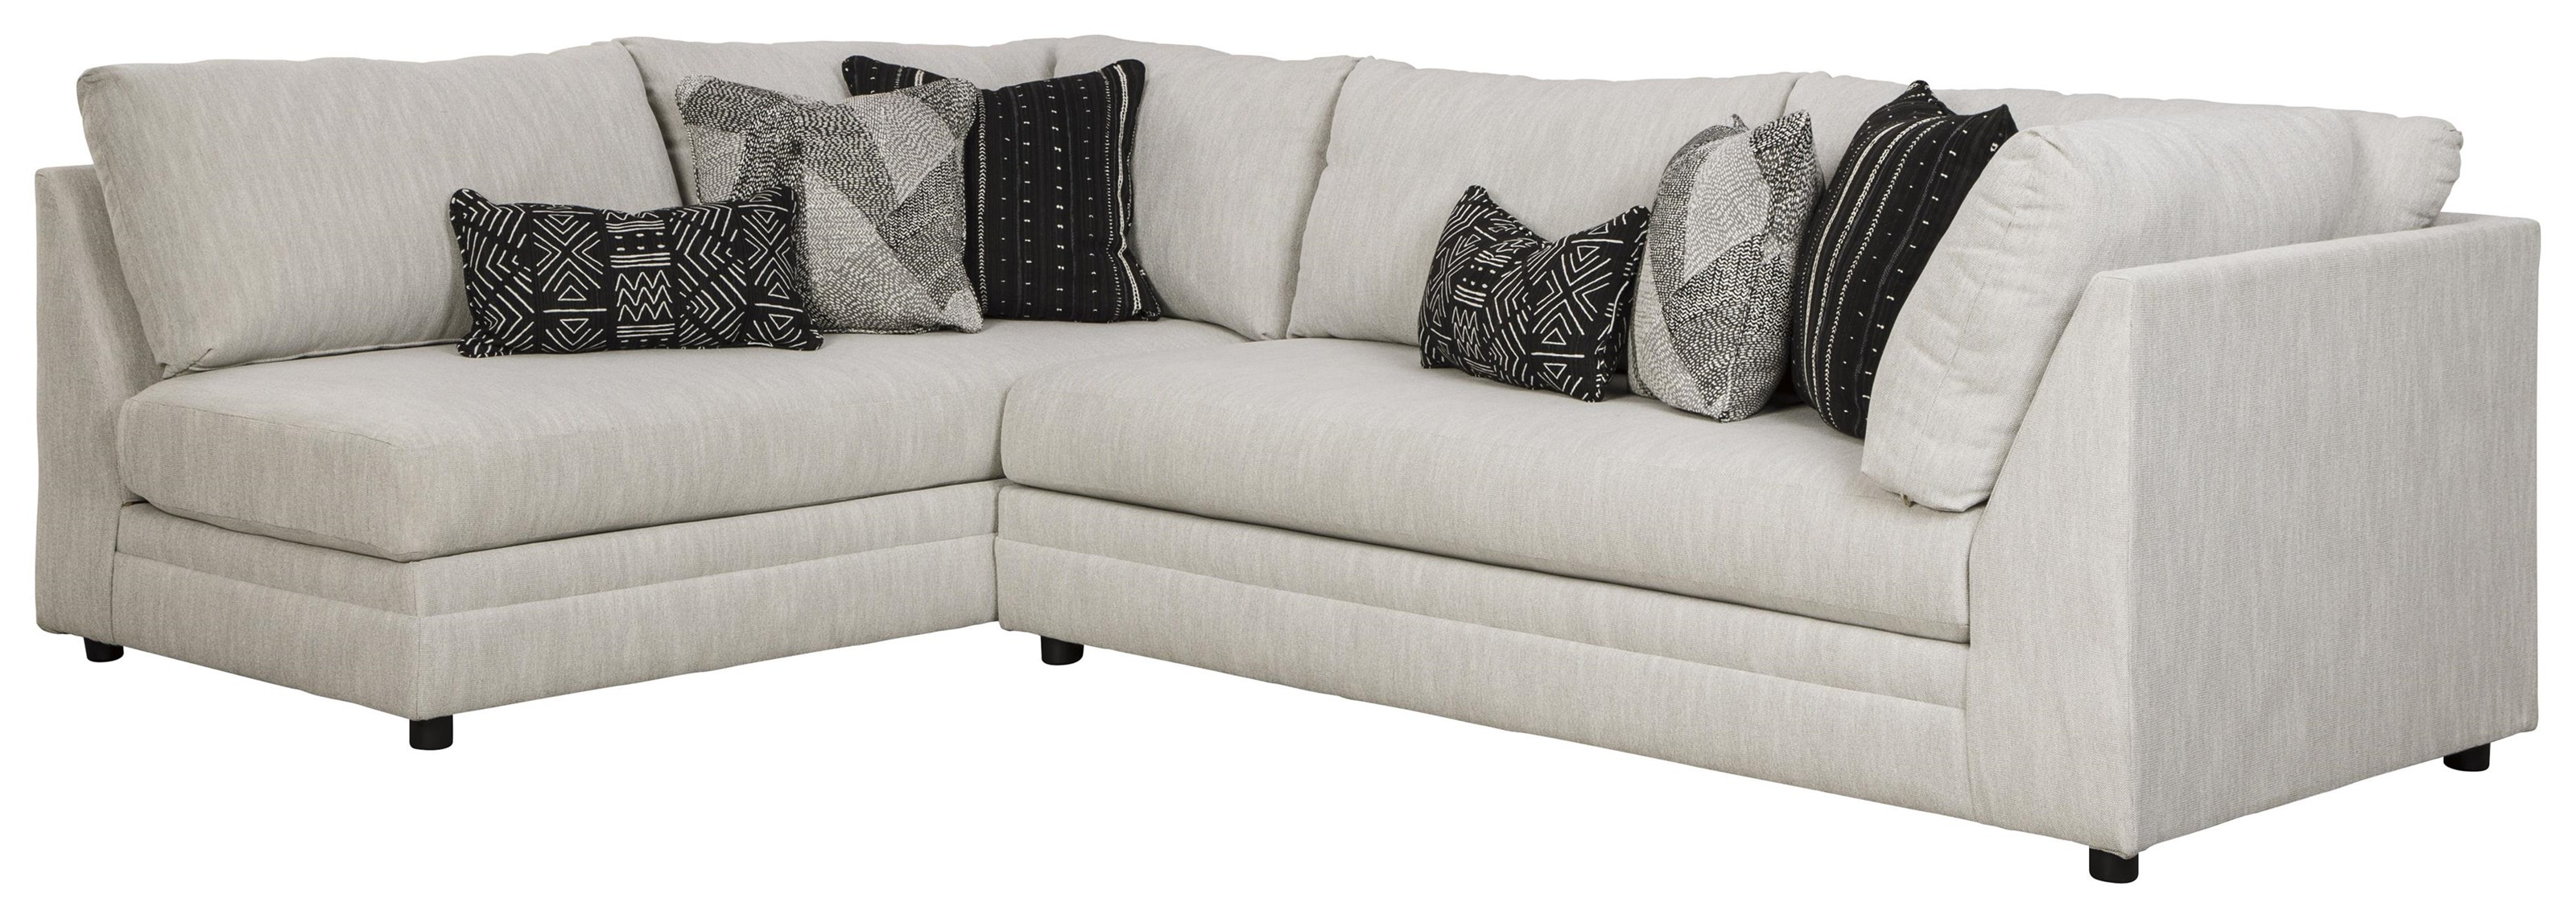 Ashley Furniture Neira 2720267 67 Neira 2 Piece Sectional Furniture And Appliancemart Sectional Sofas